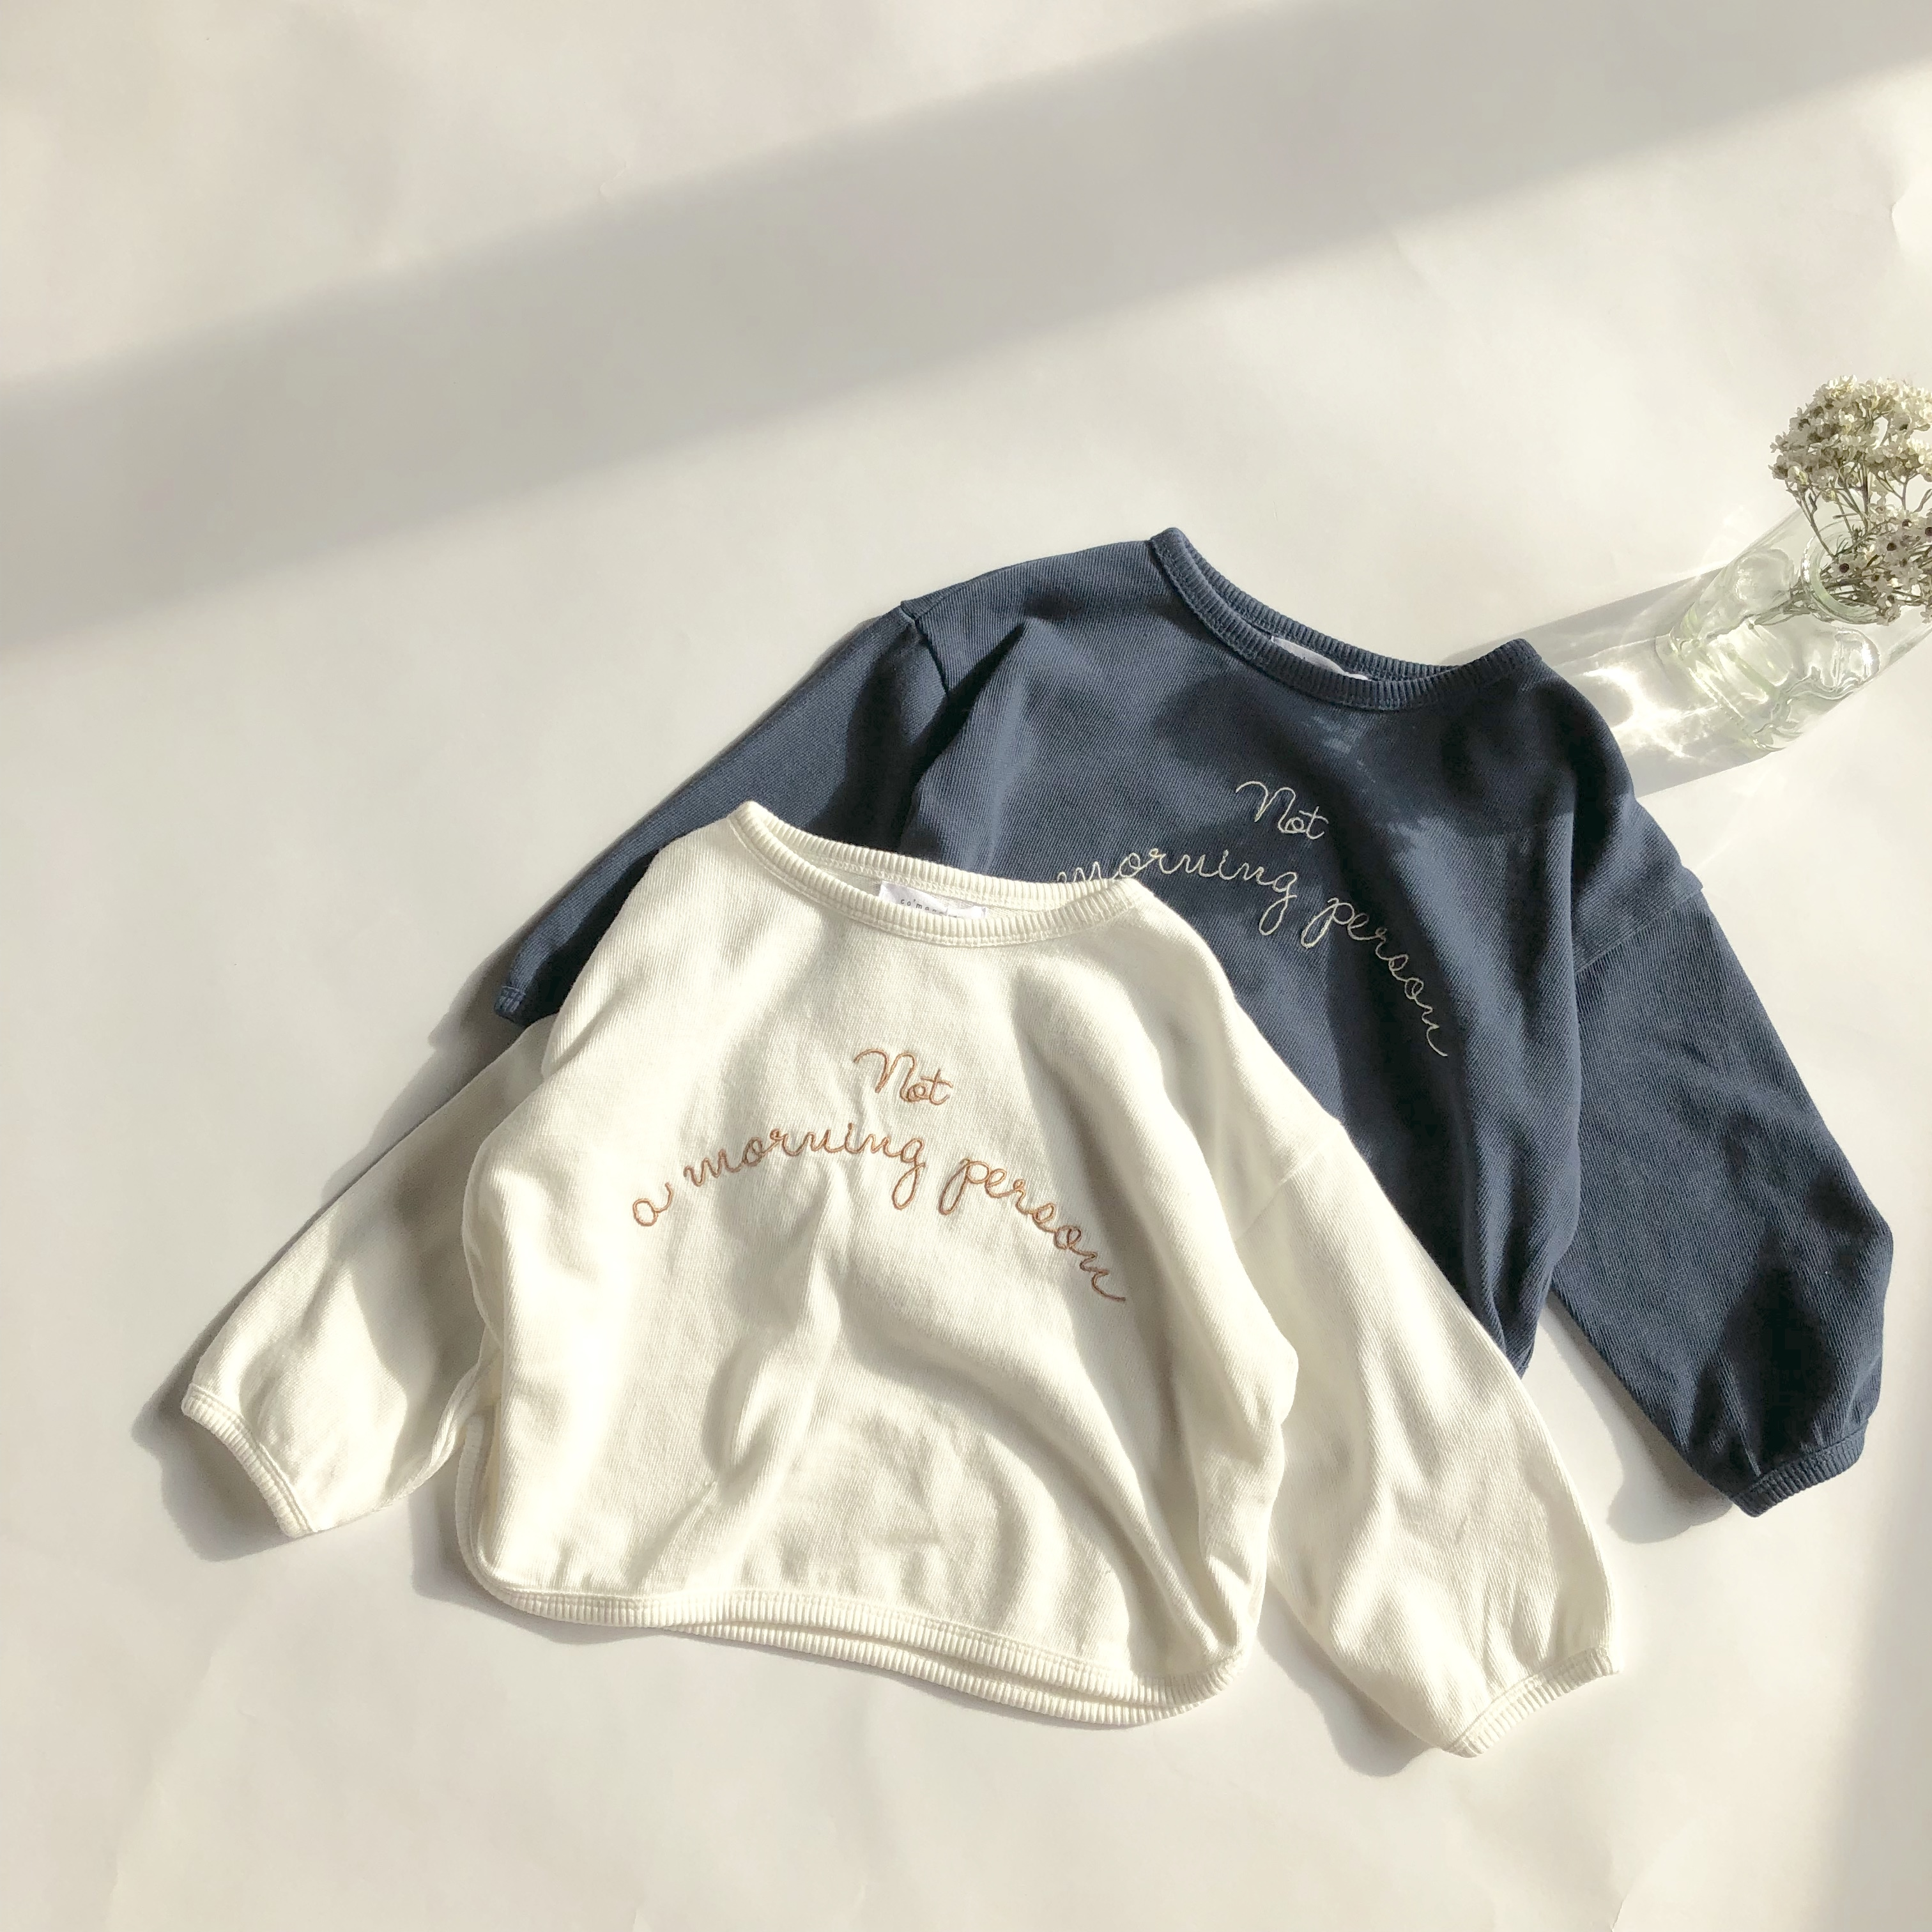 《 112 》Embroidery T